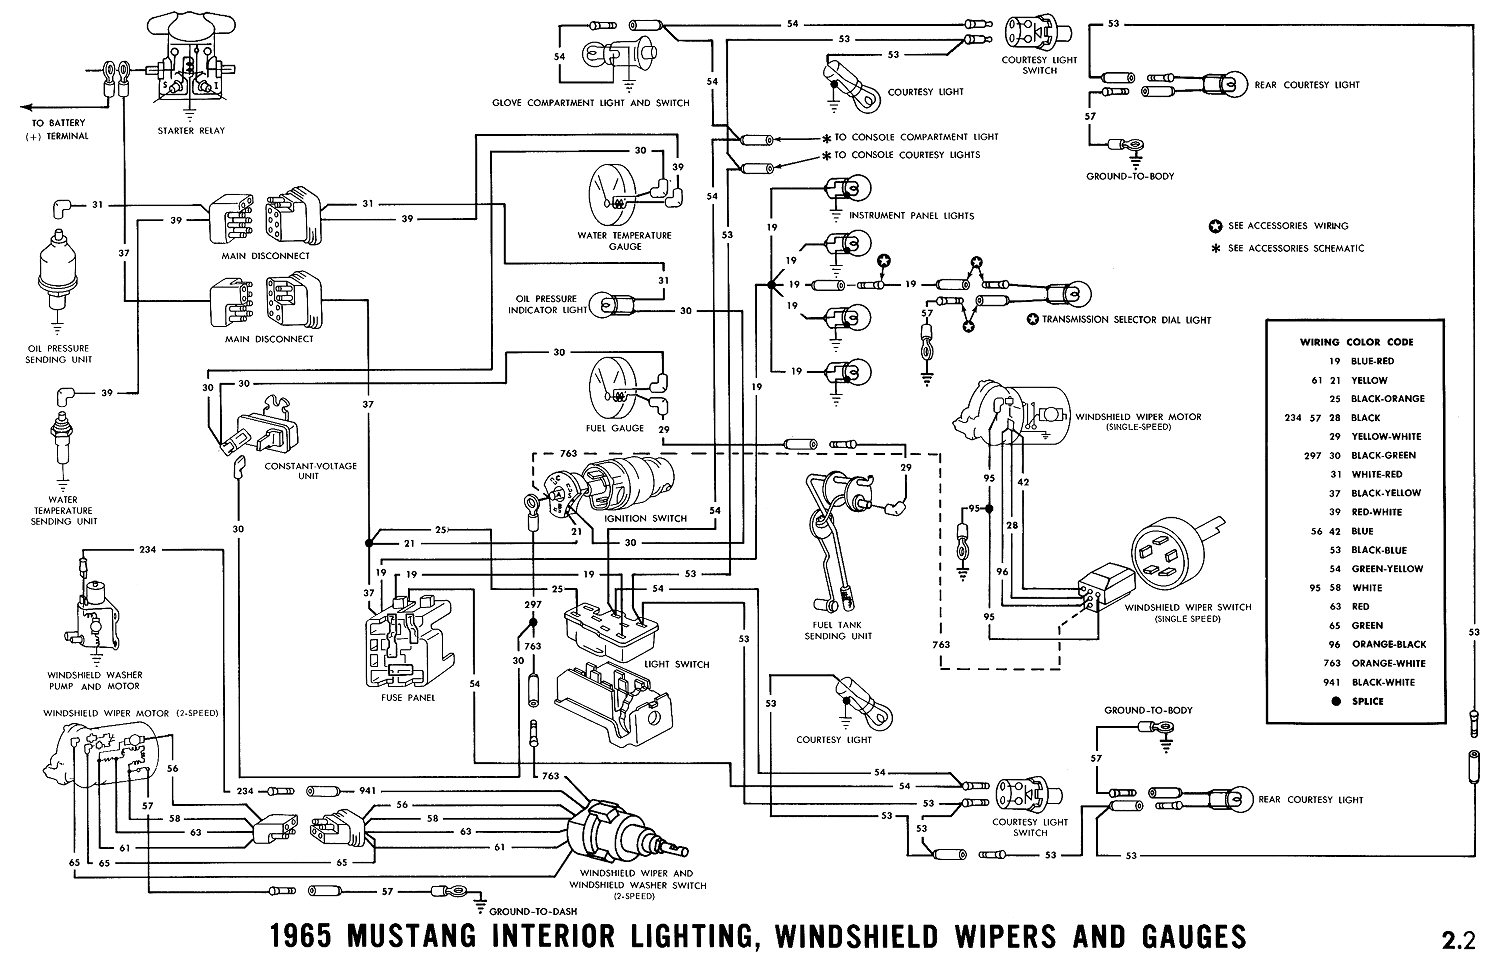 ford xy wiring diagram ford auto wiring diagram schematic el falcon wiring diagram all about wiring diagram on ford xy wiring diagram